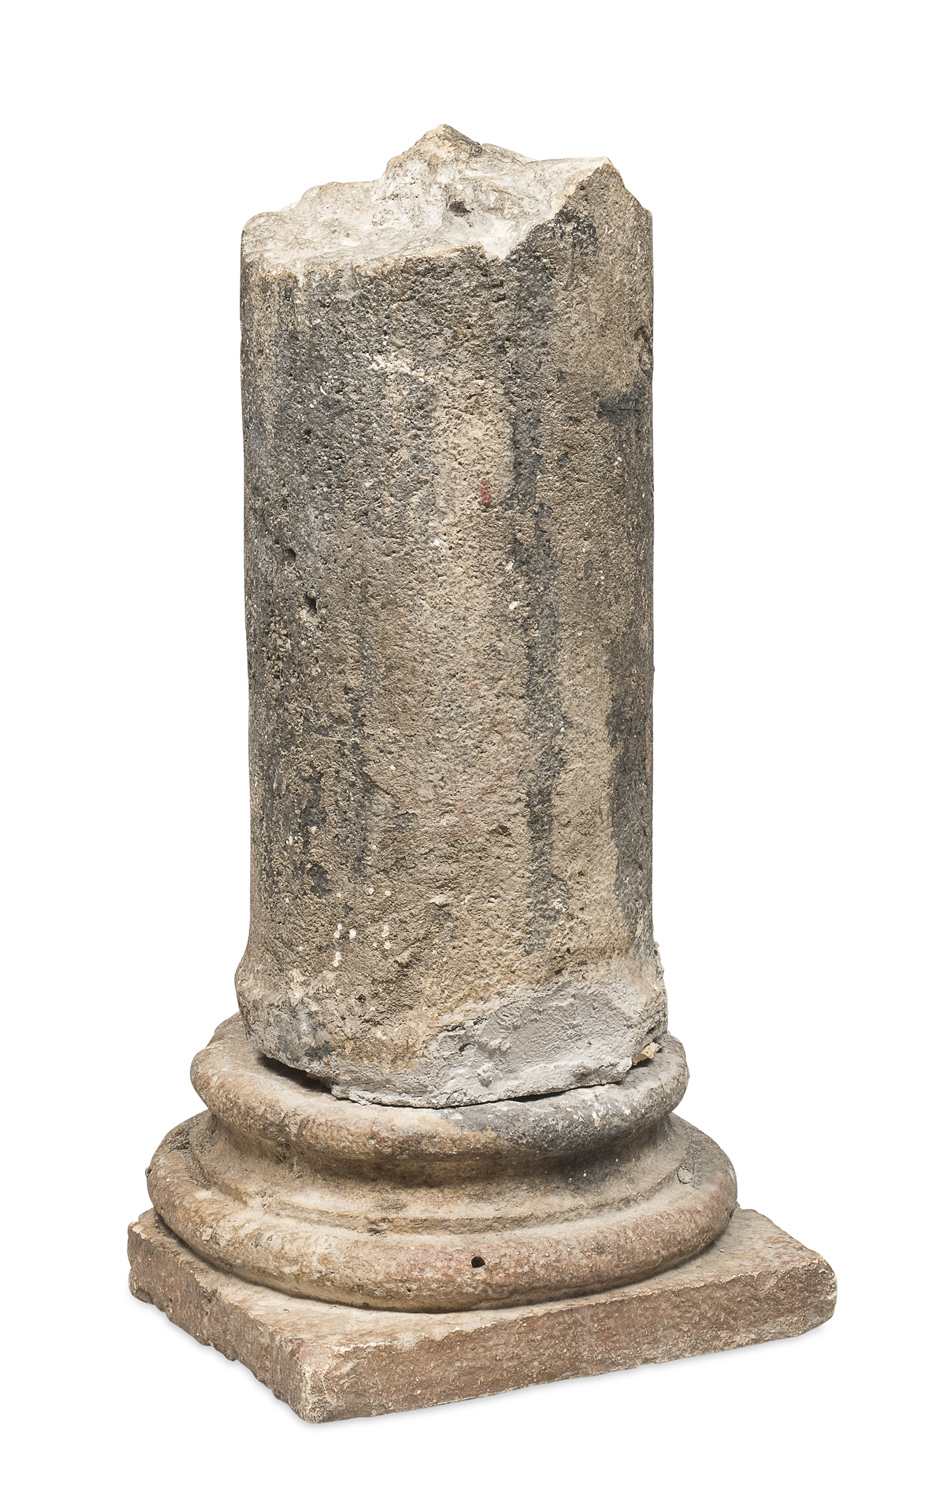 FRAGMENT OF A MARBLE COLUMN 16TH CENTURY